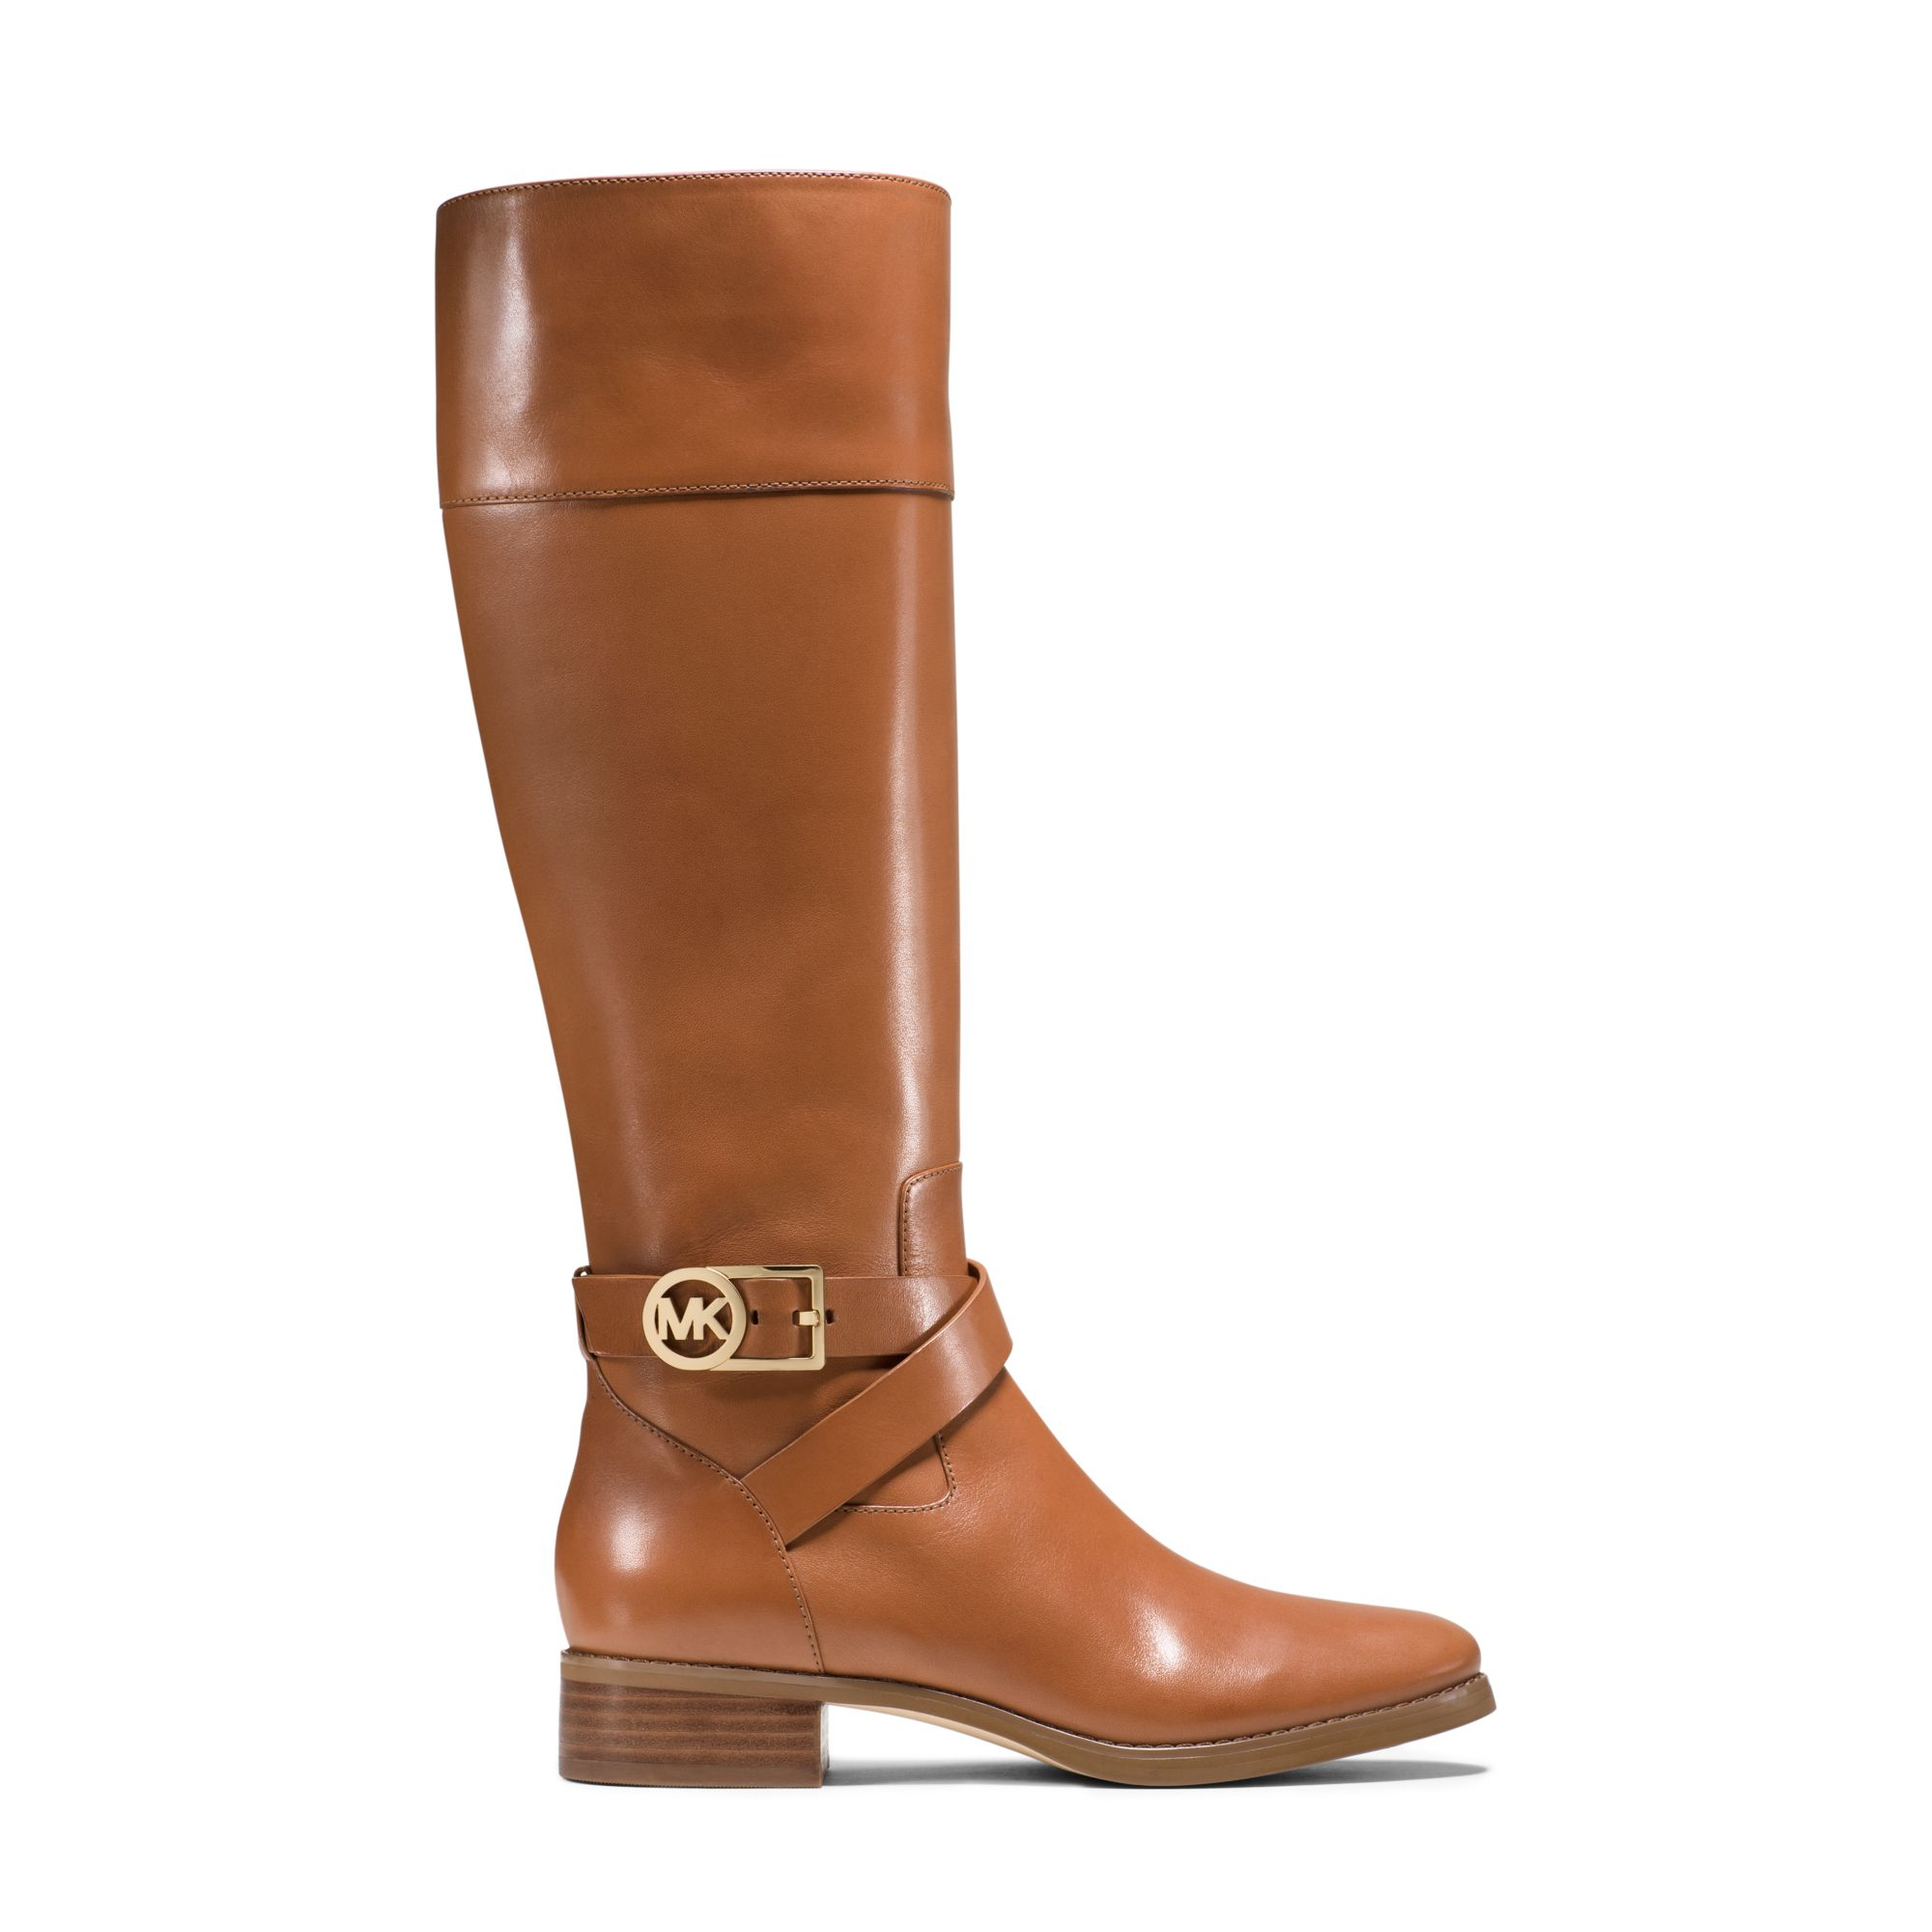 michael kors bryce leather boot in brown luggage lyst